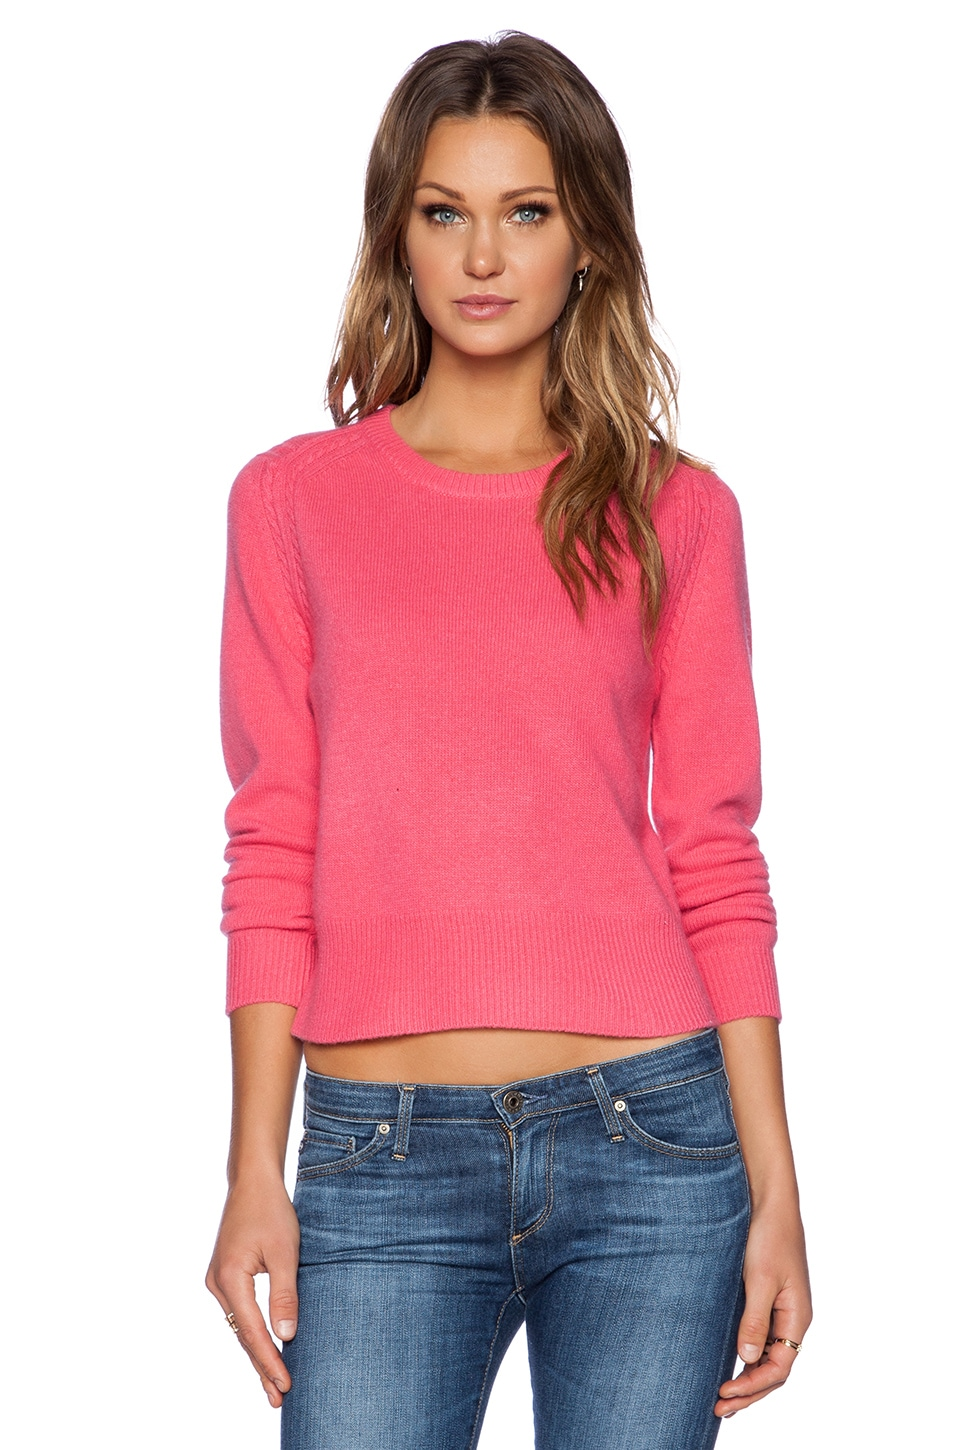 Marc by Marc Jacobs Iris Sweater in Pretty Pink Multi